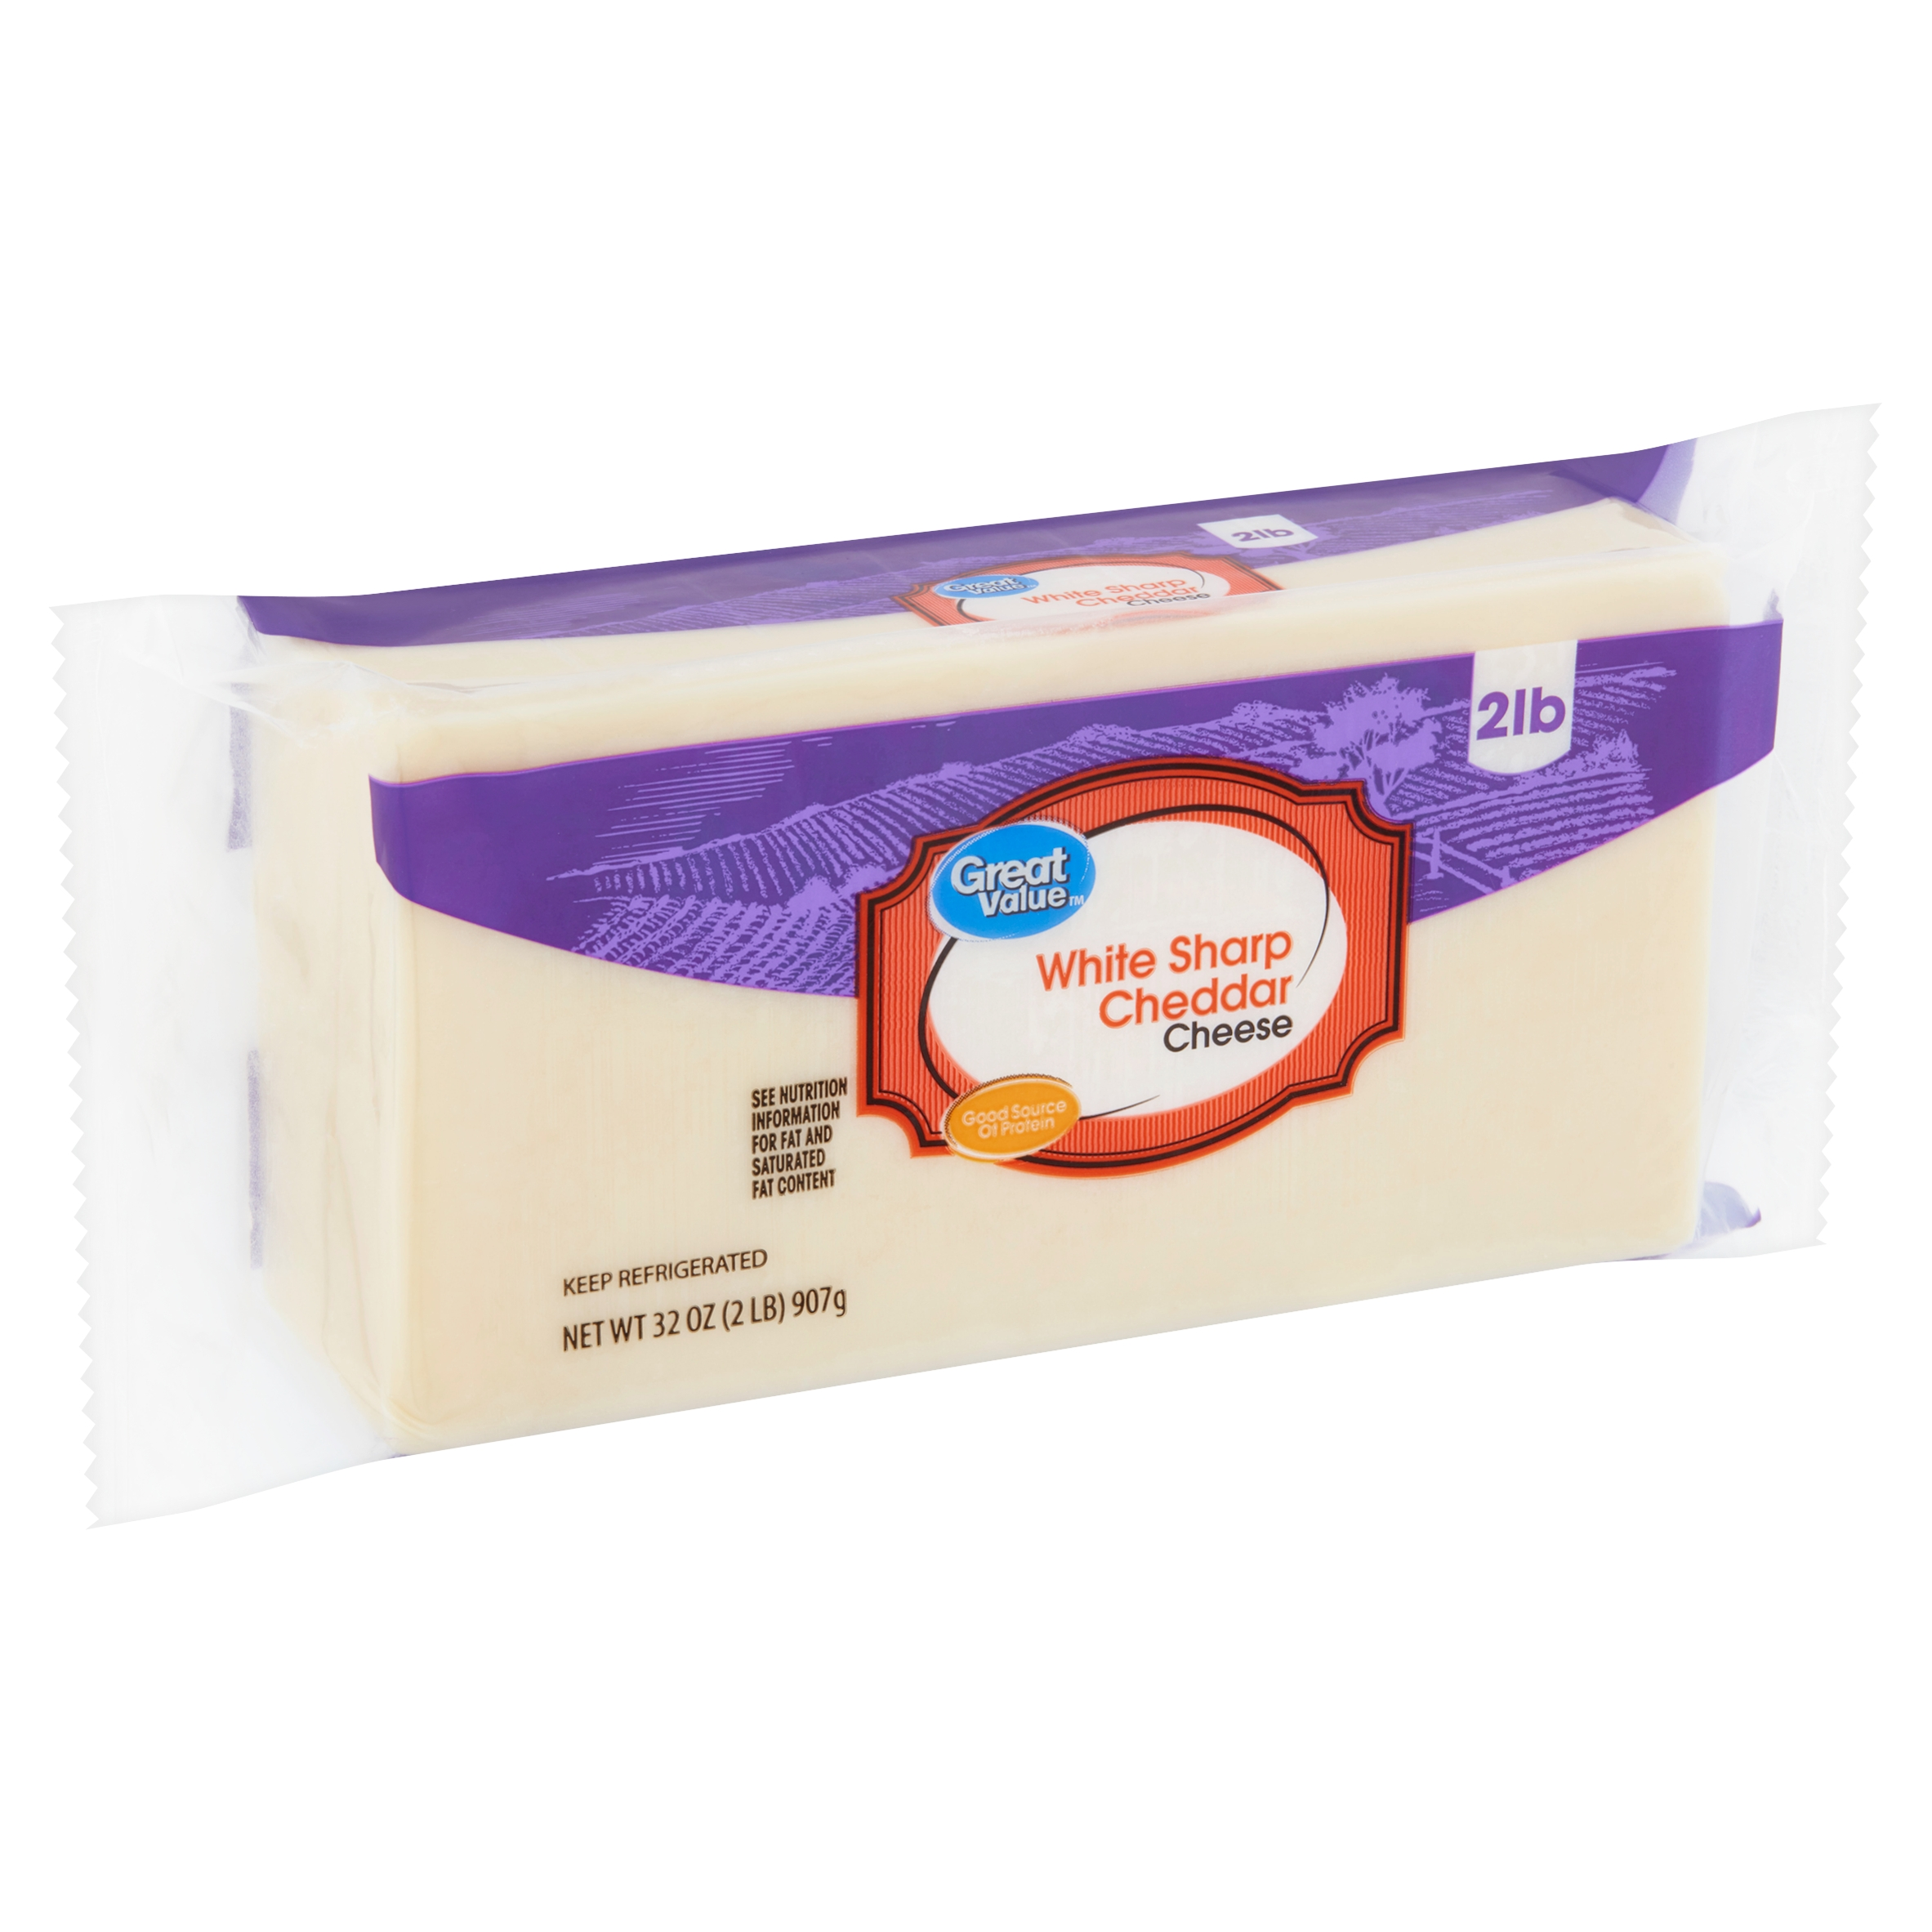 Great Value White Sharp Cheddar Cheese, 32 oz